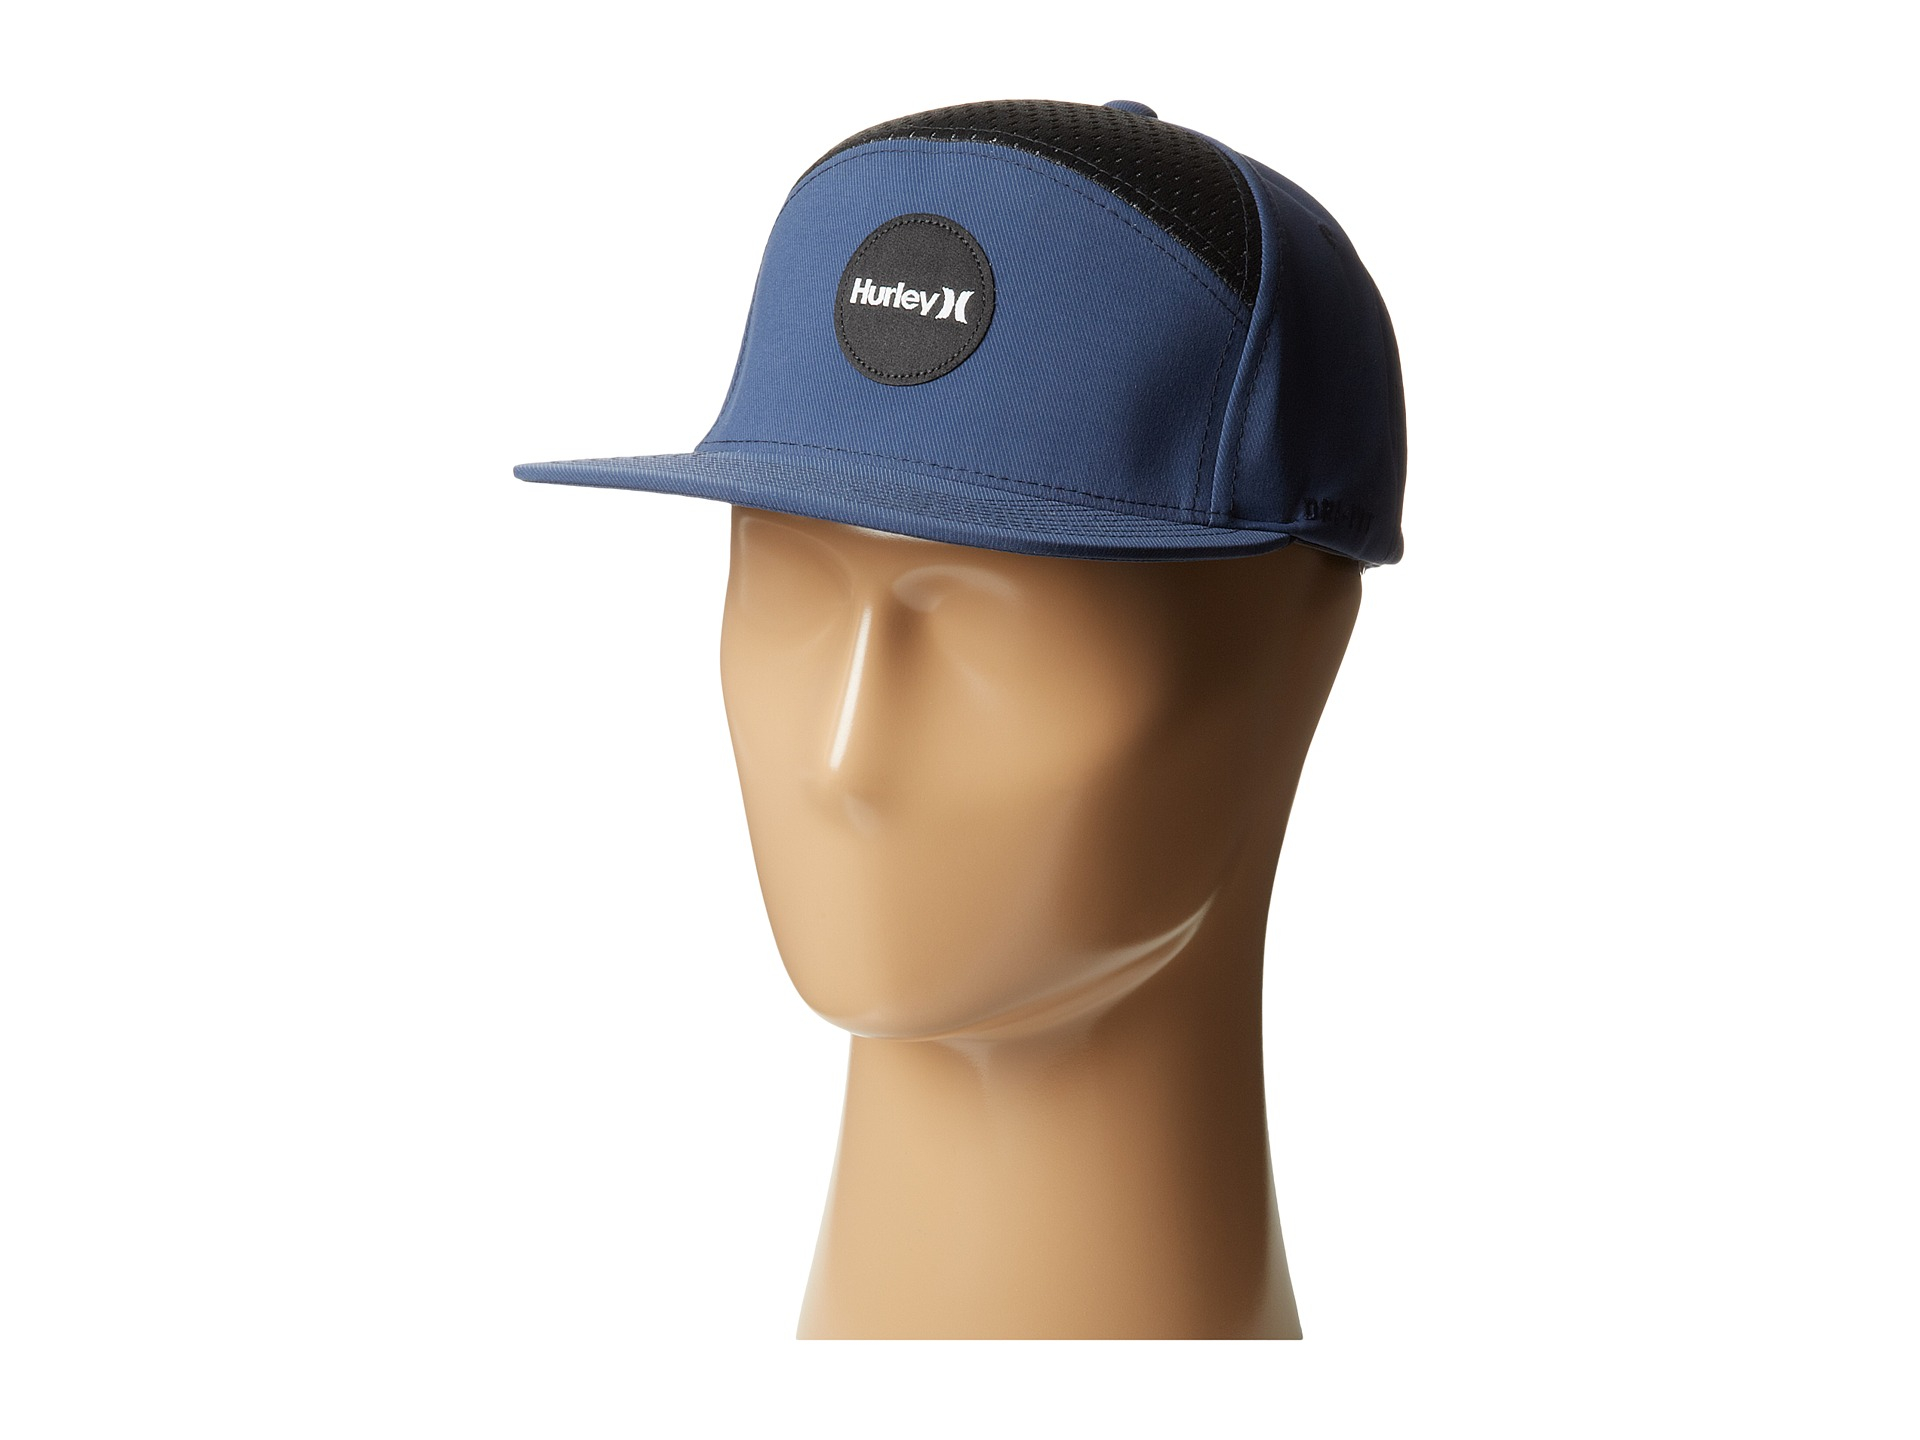 44ae0429408 ... shopping lyst hurley draft 6 panel hat in blue for men e8933 4540f